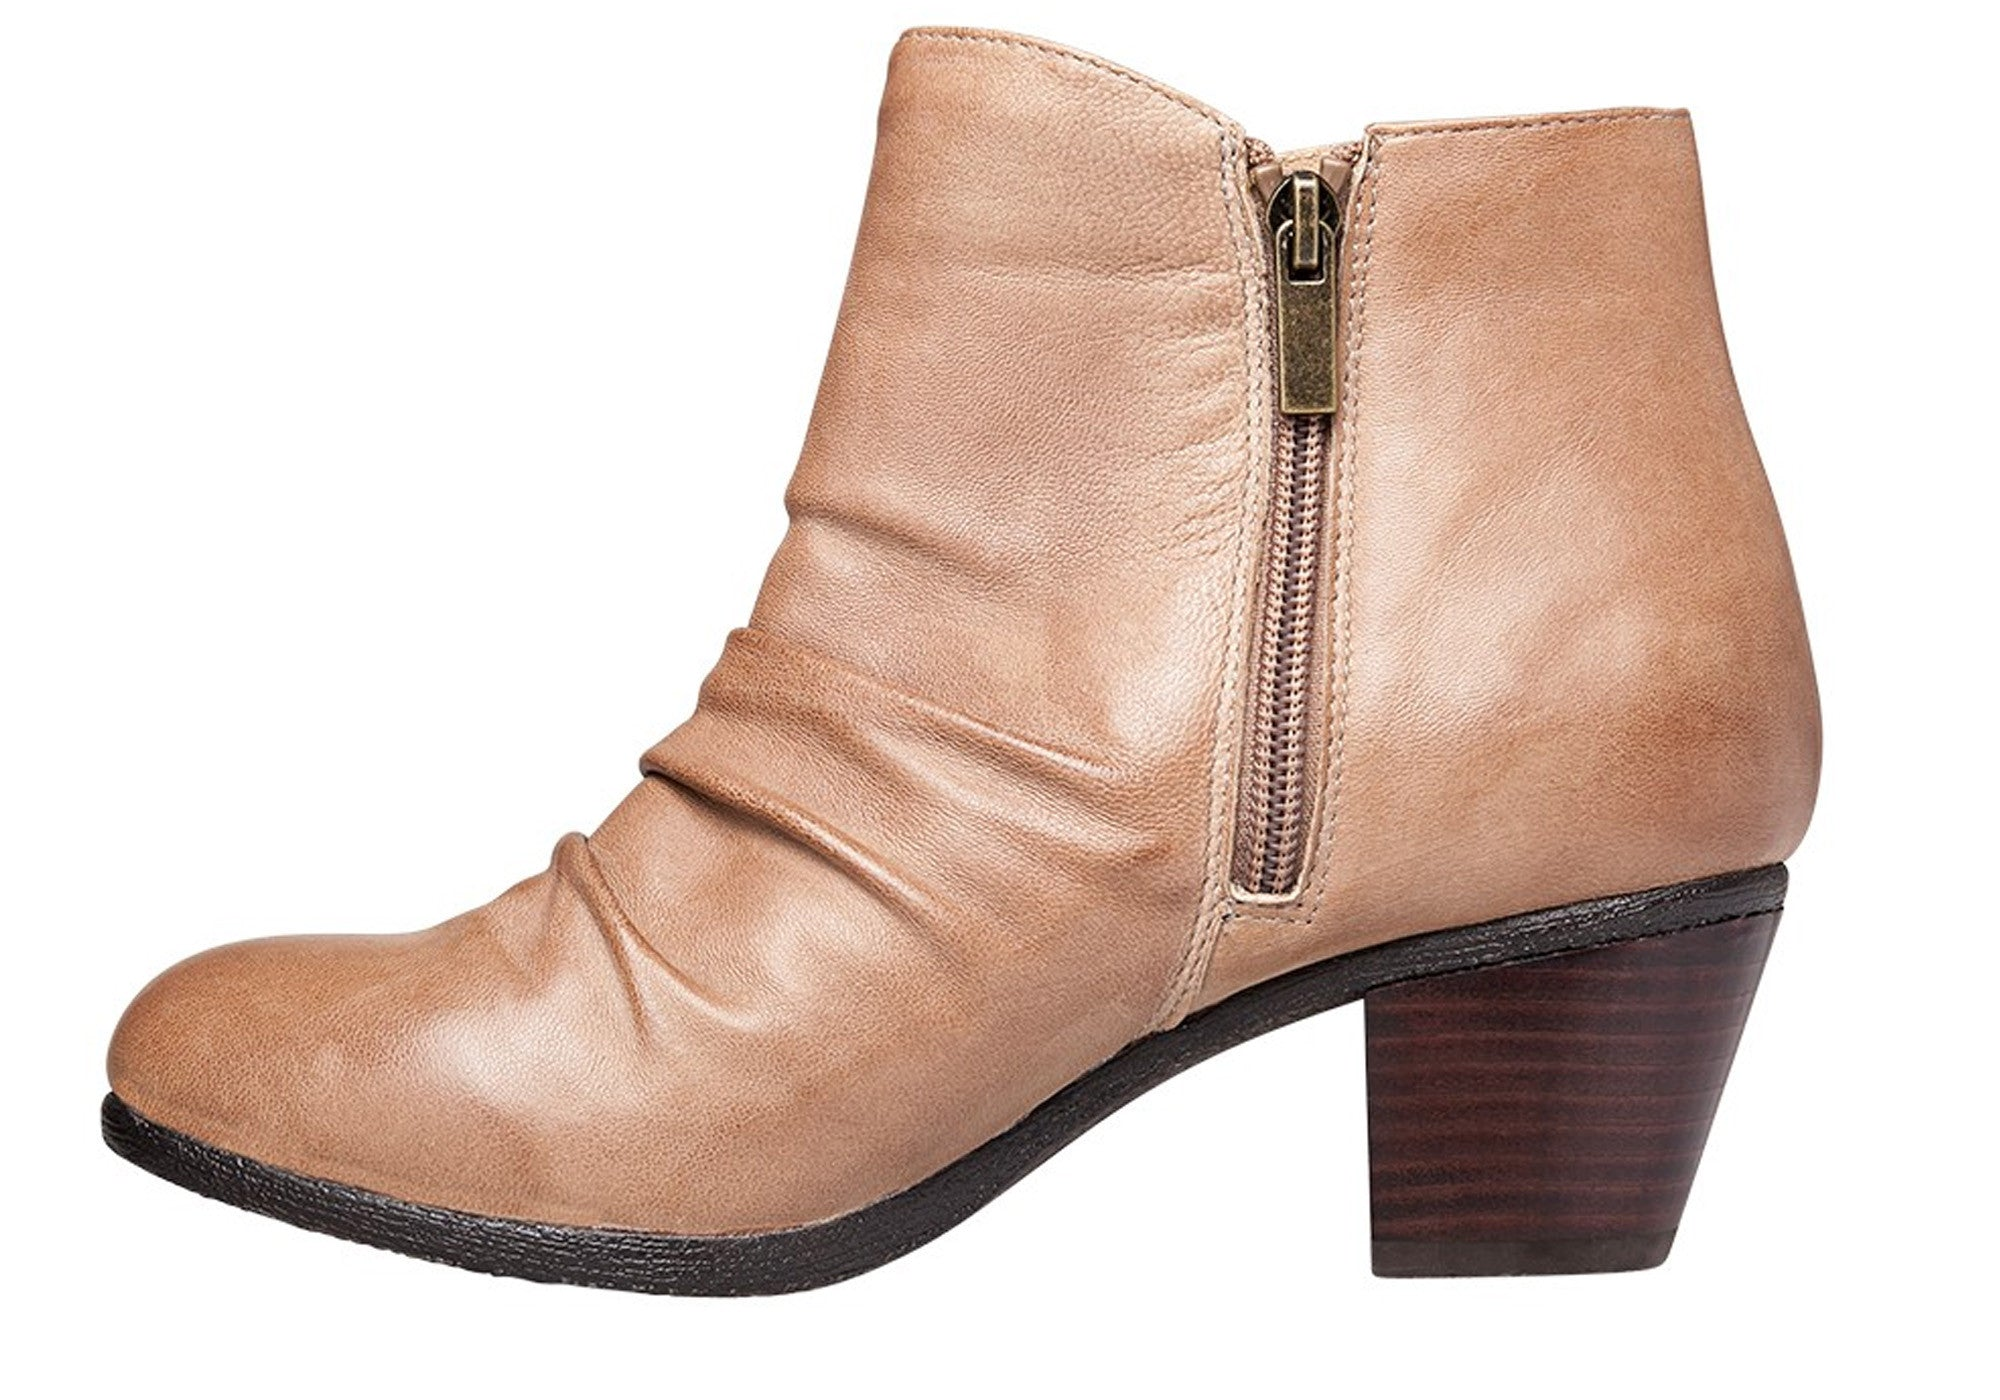 Hush Puppies Galla Womens Leather Ankle Boots